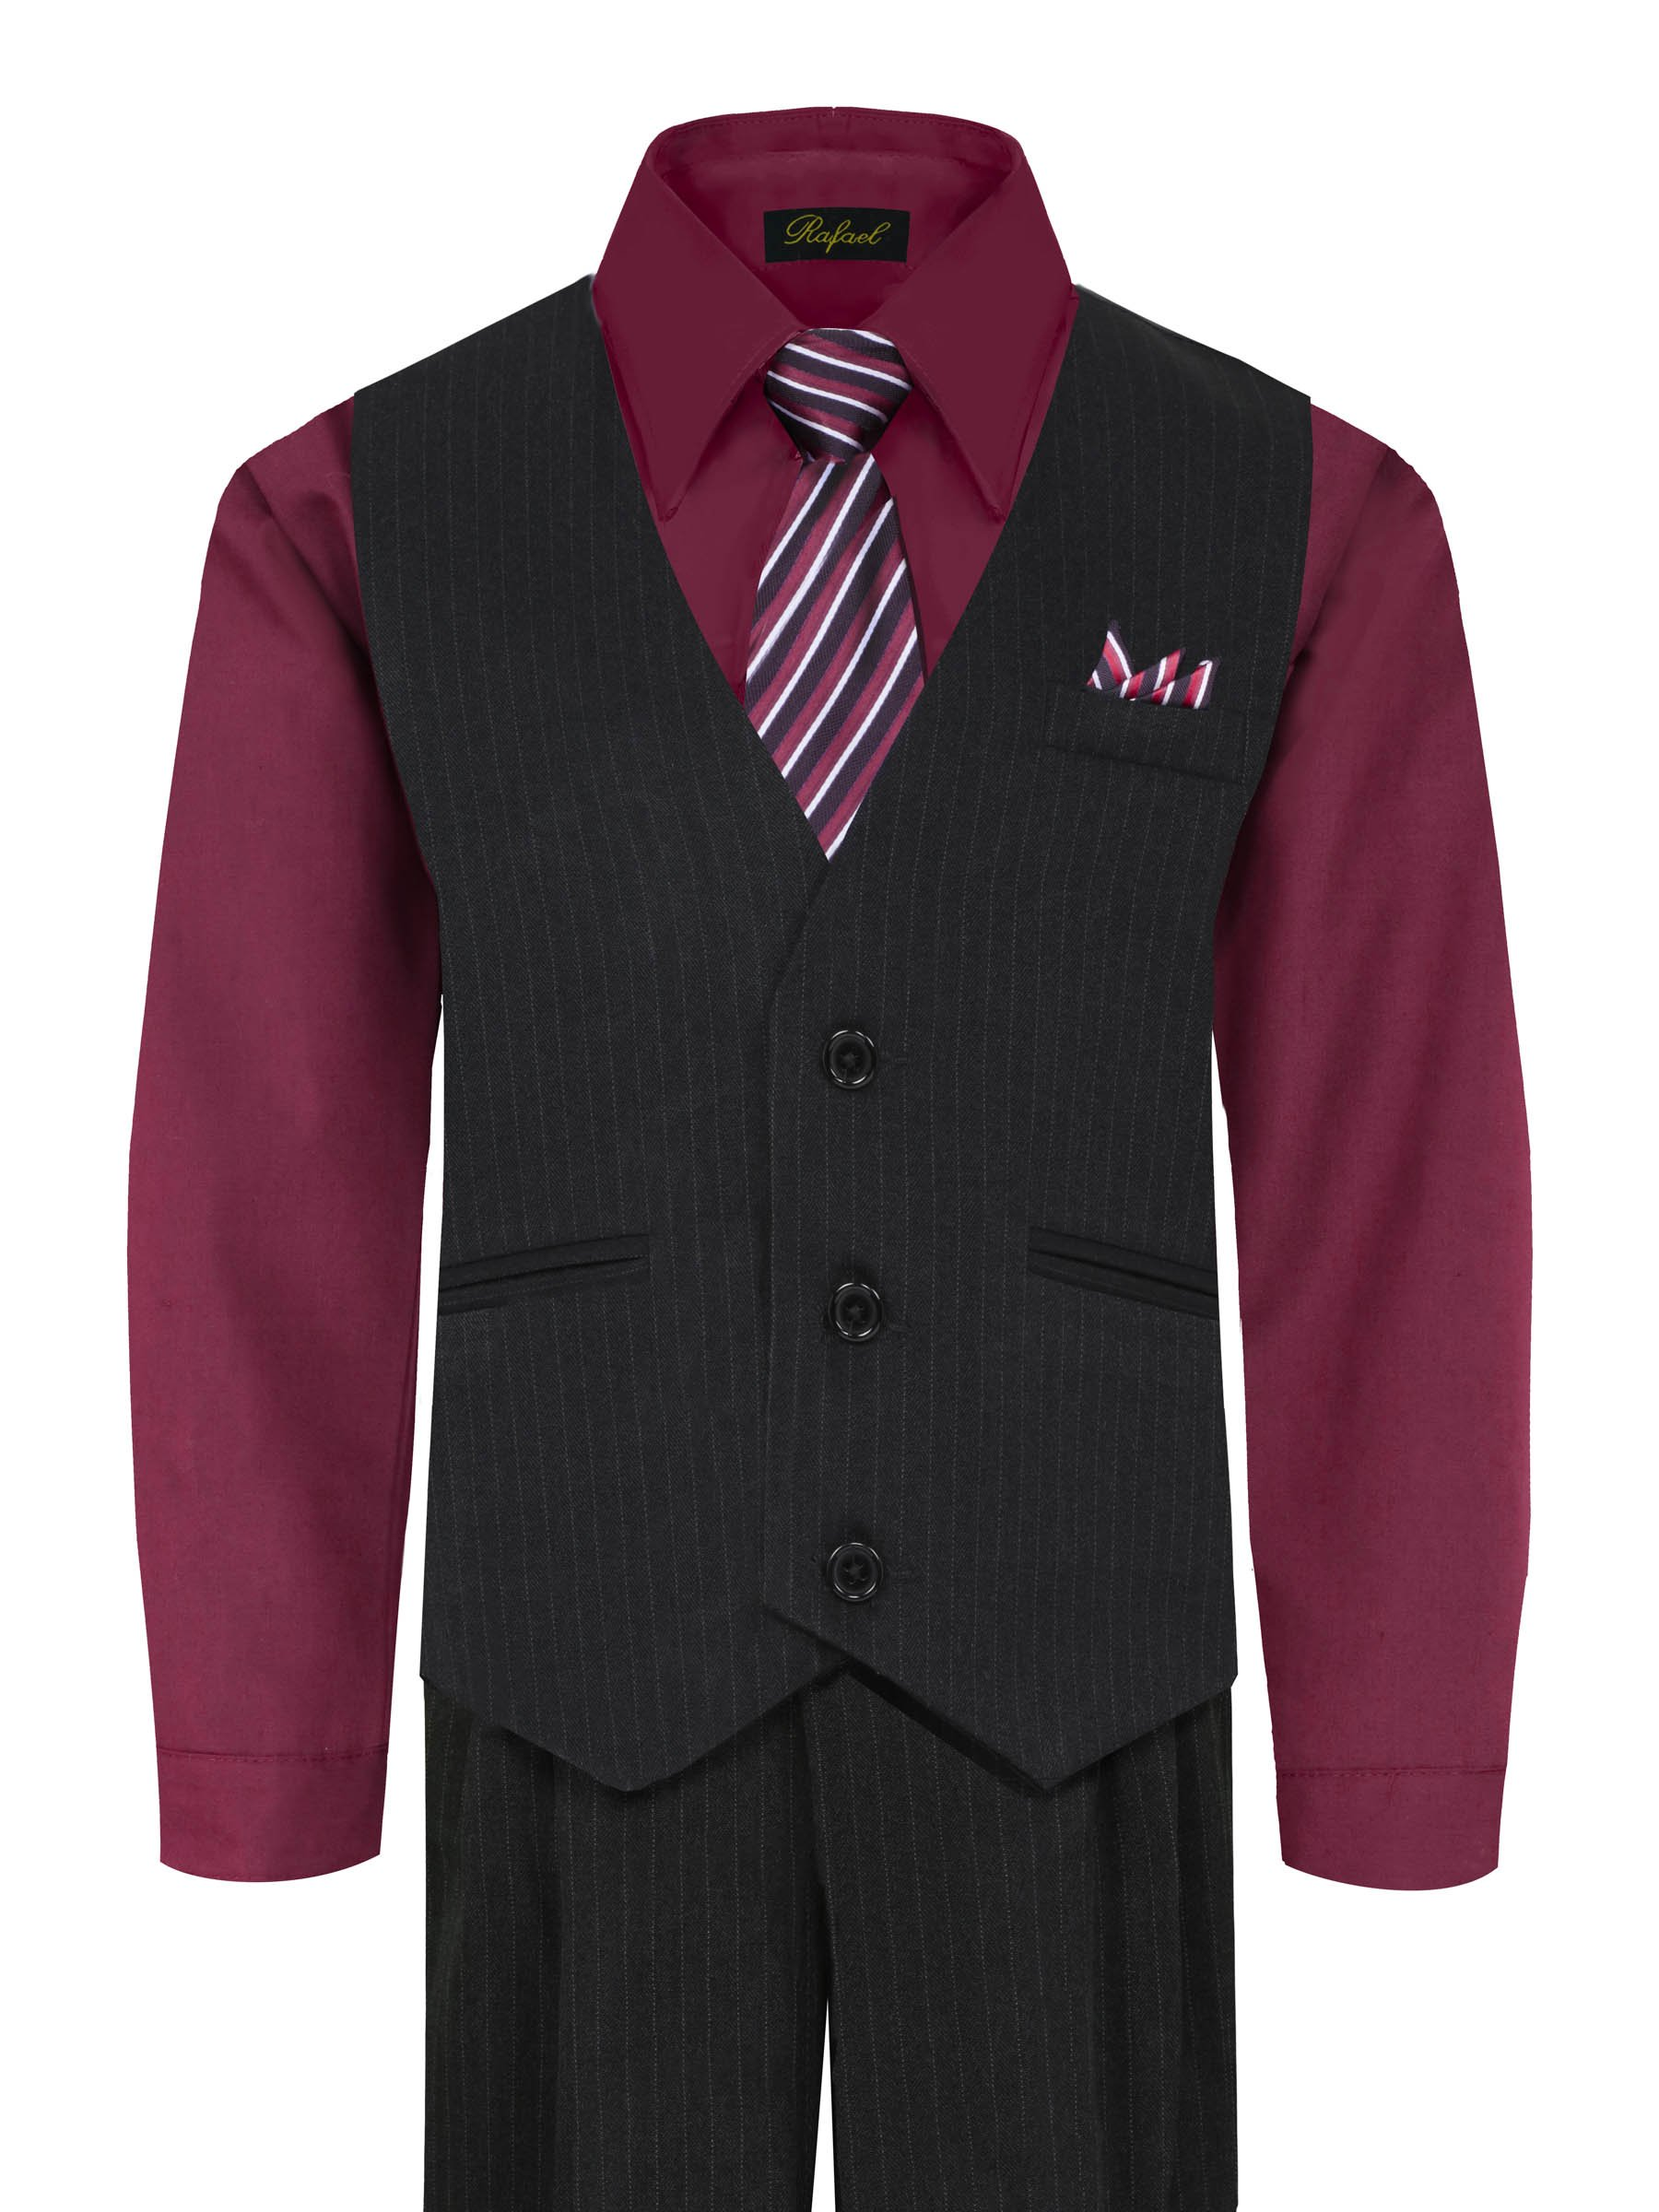 Boy's Vest and Pant Set, Includes Shirt, Tie and Hanky - BURGUNDY 4T